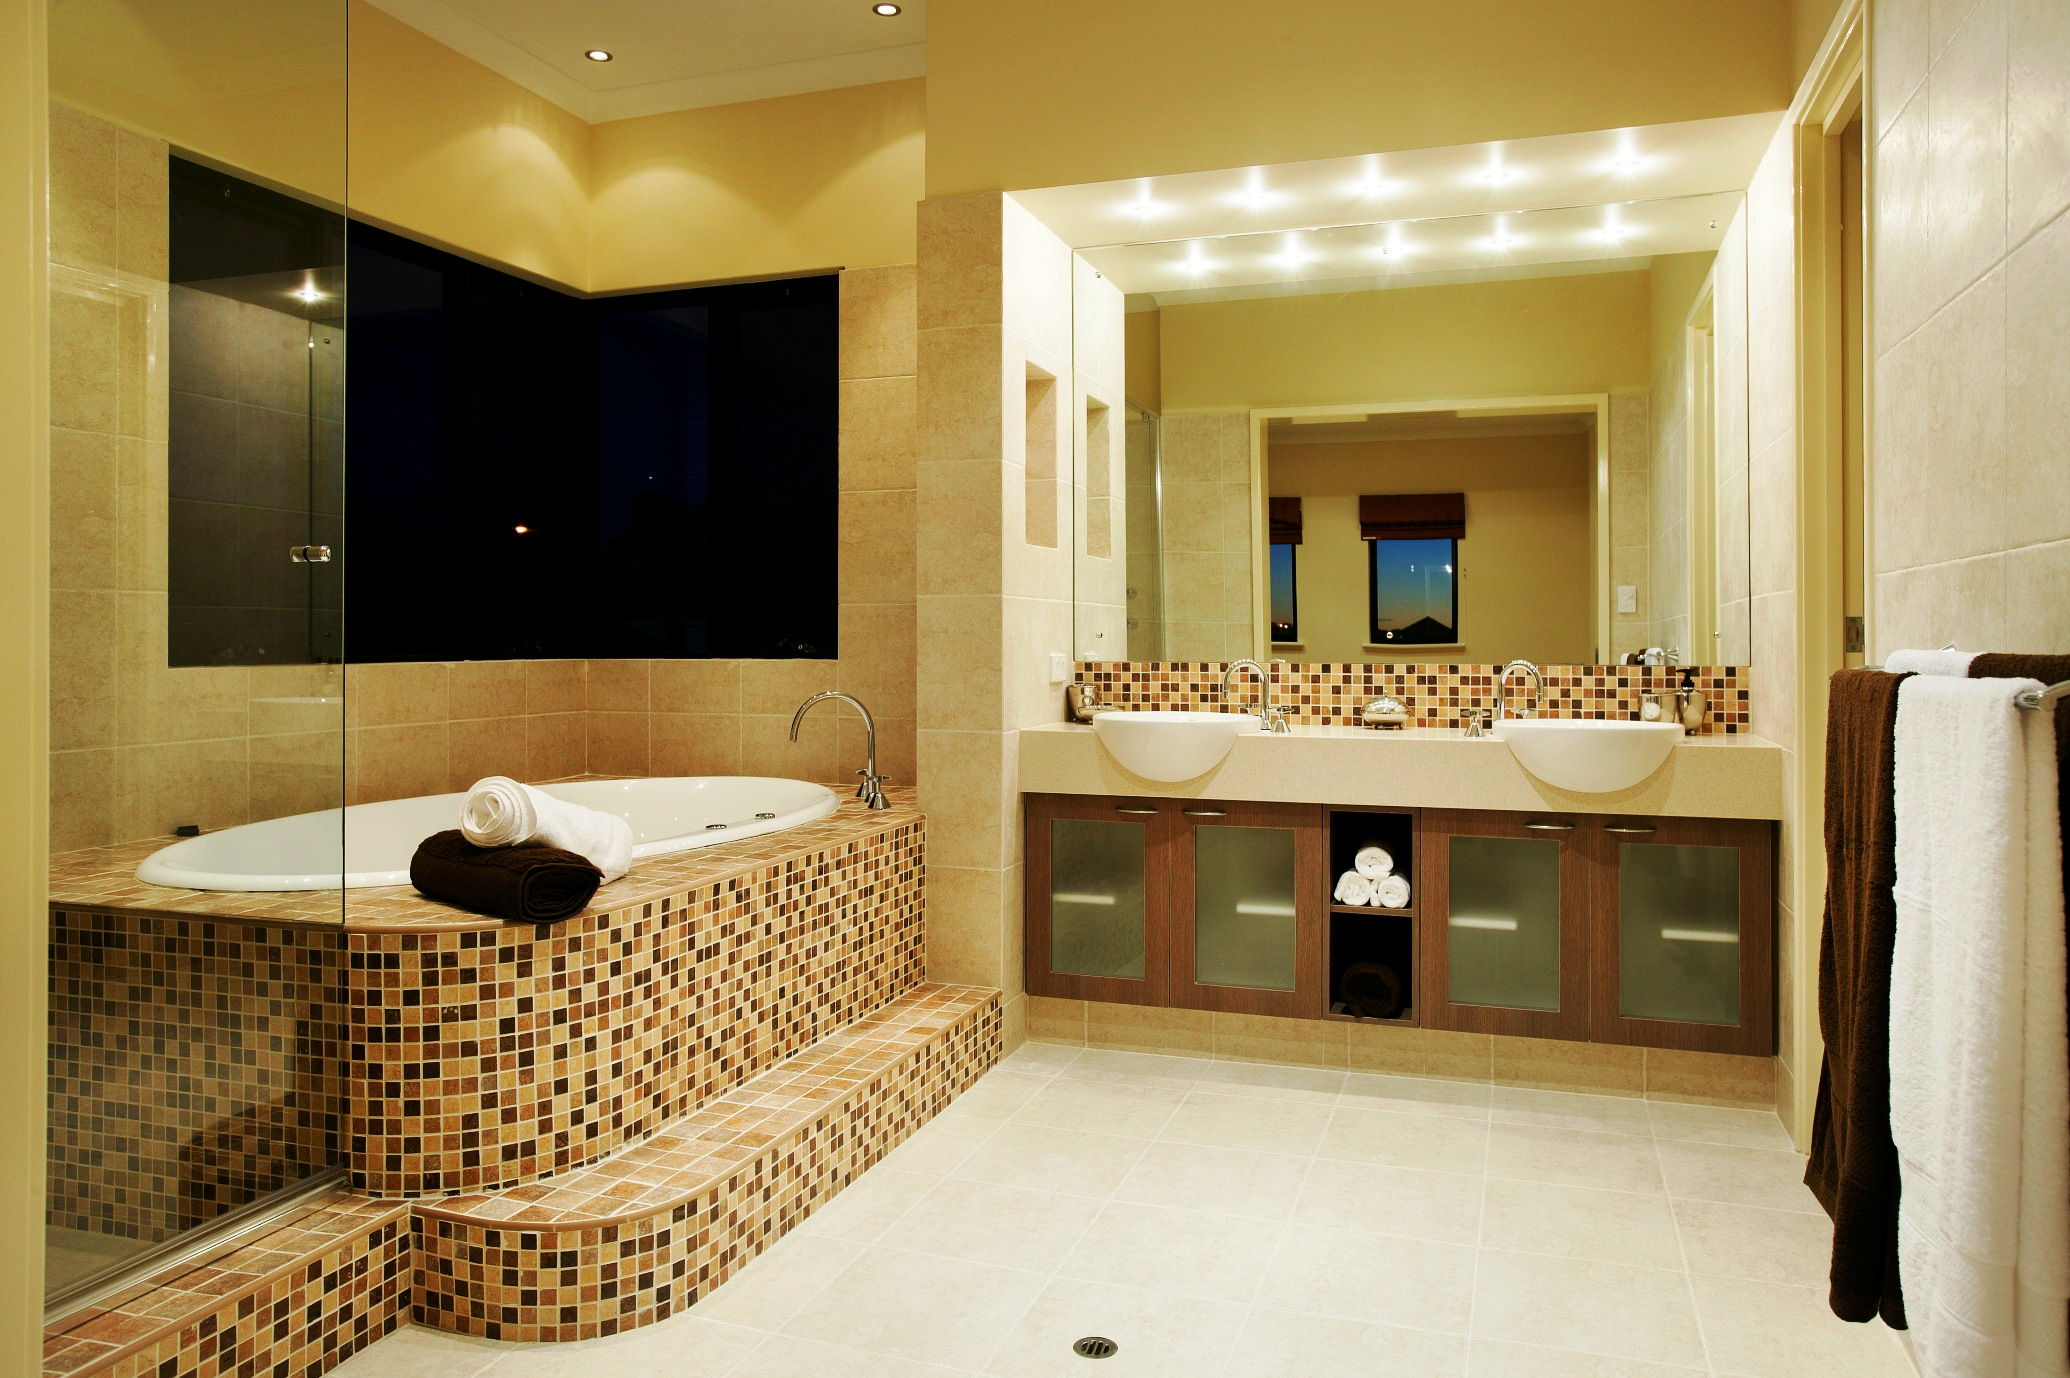 Model Home Bathroom model home bathrooms - large and beautiful photos. photo to select